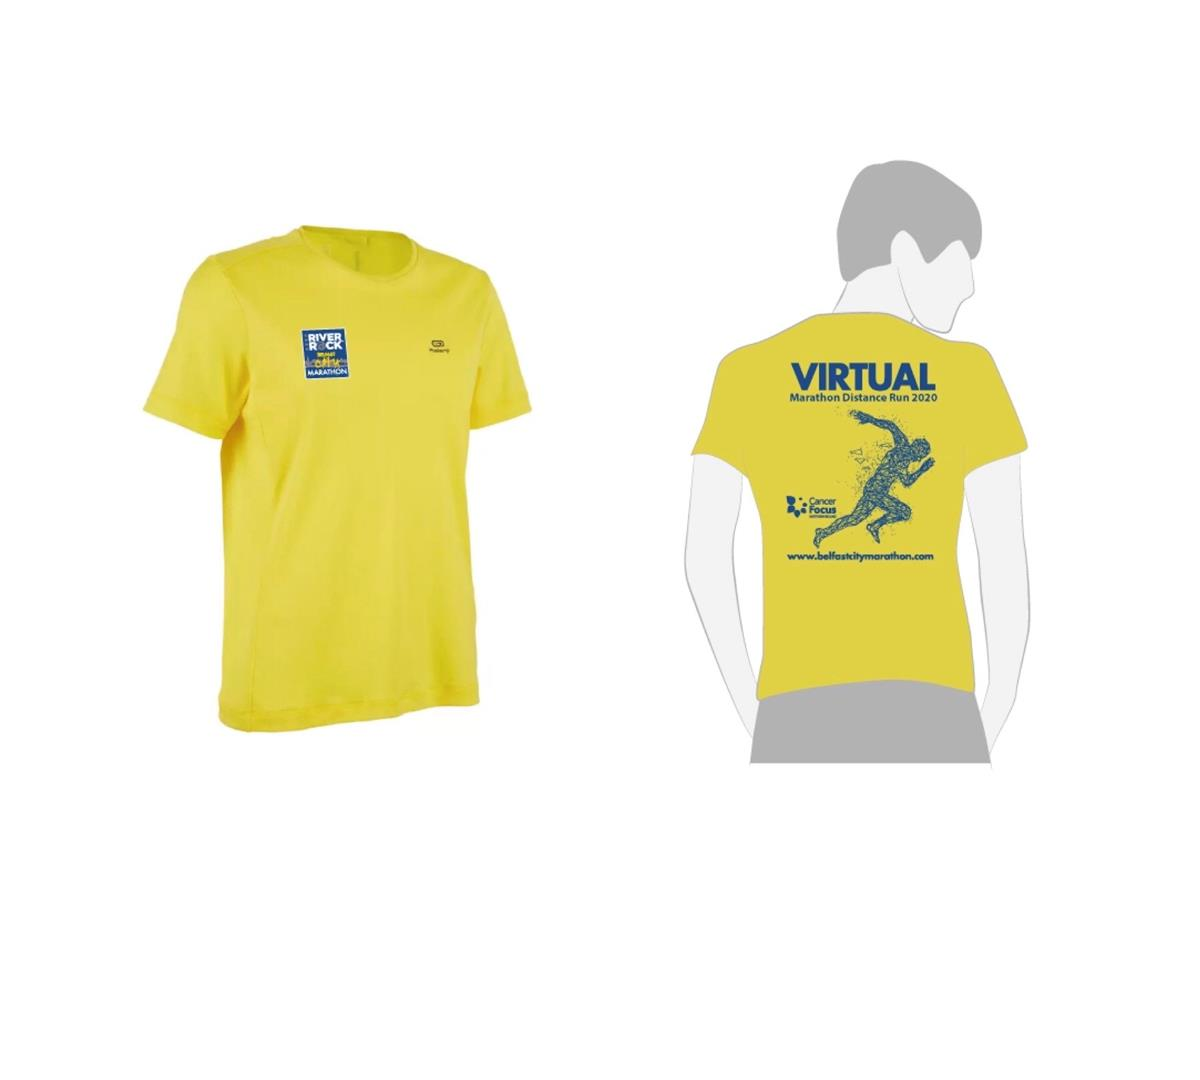 Virtual Marathon Distance Run Tech Tee